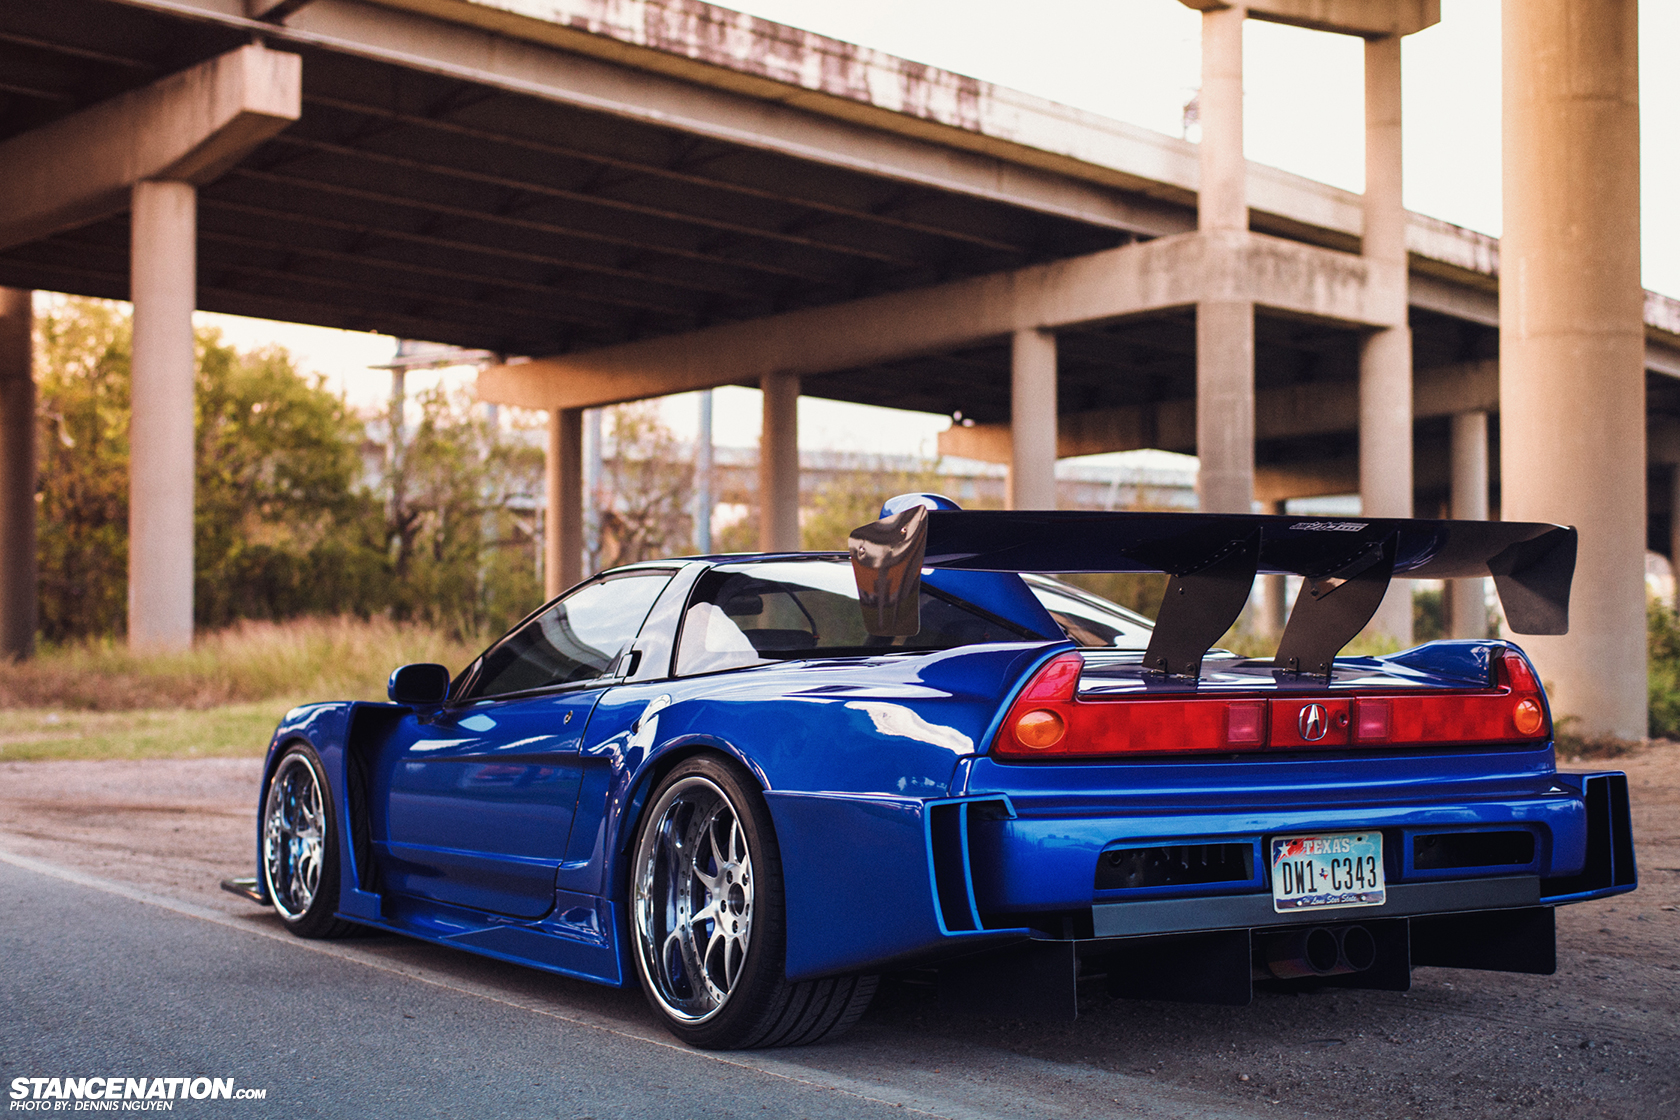 Mind Blowing // Brent's Sorcery JGTC Acura NSX. | StanceNation™ // Form > Function